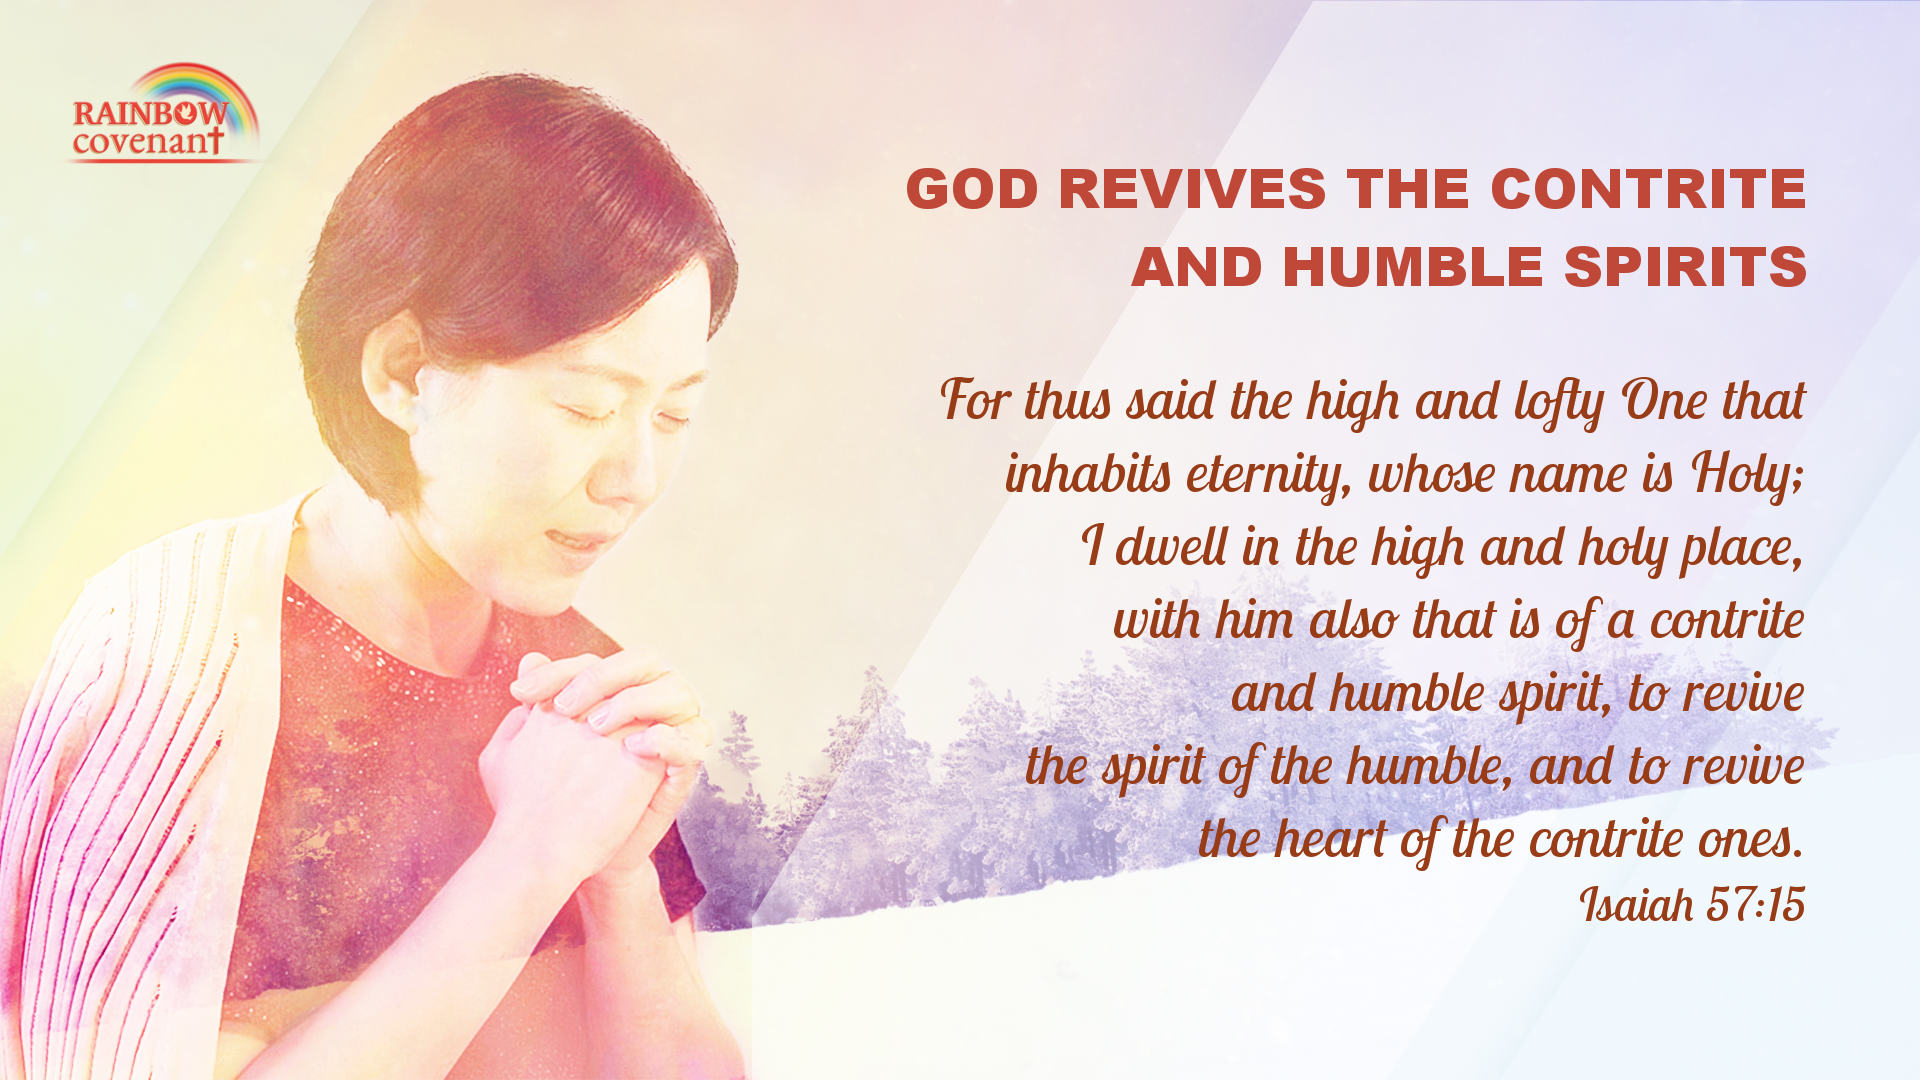 God revives the contrite and humble spirits